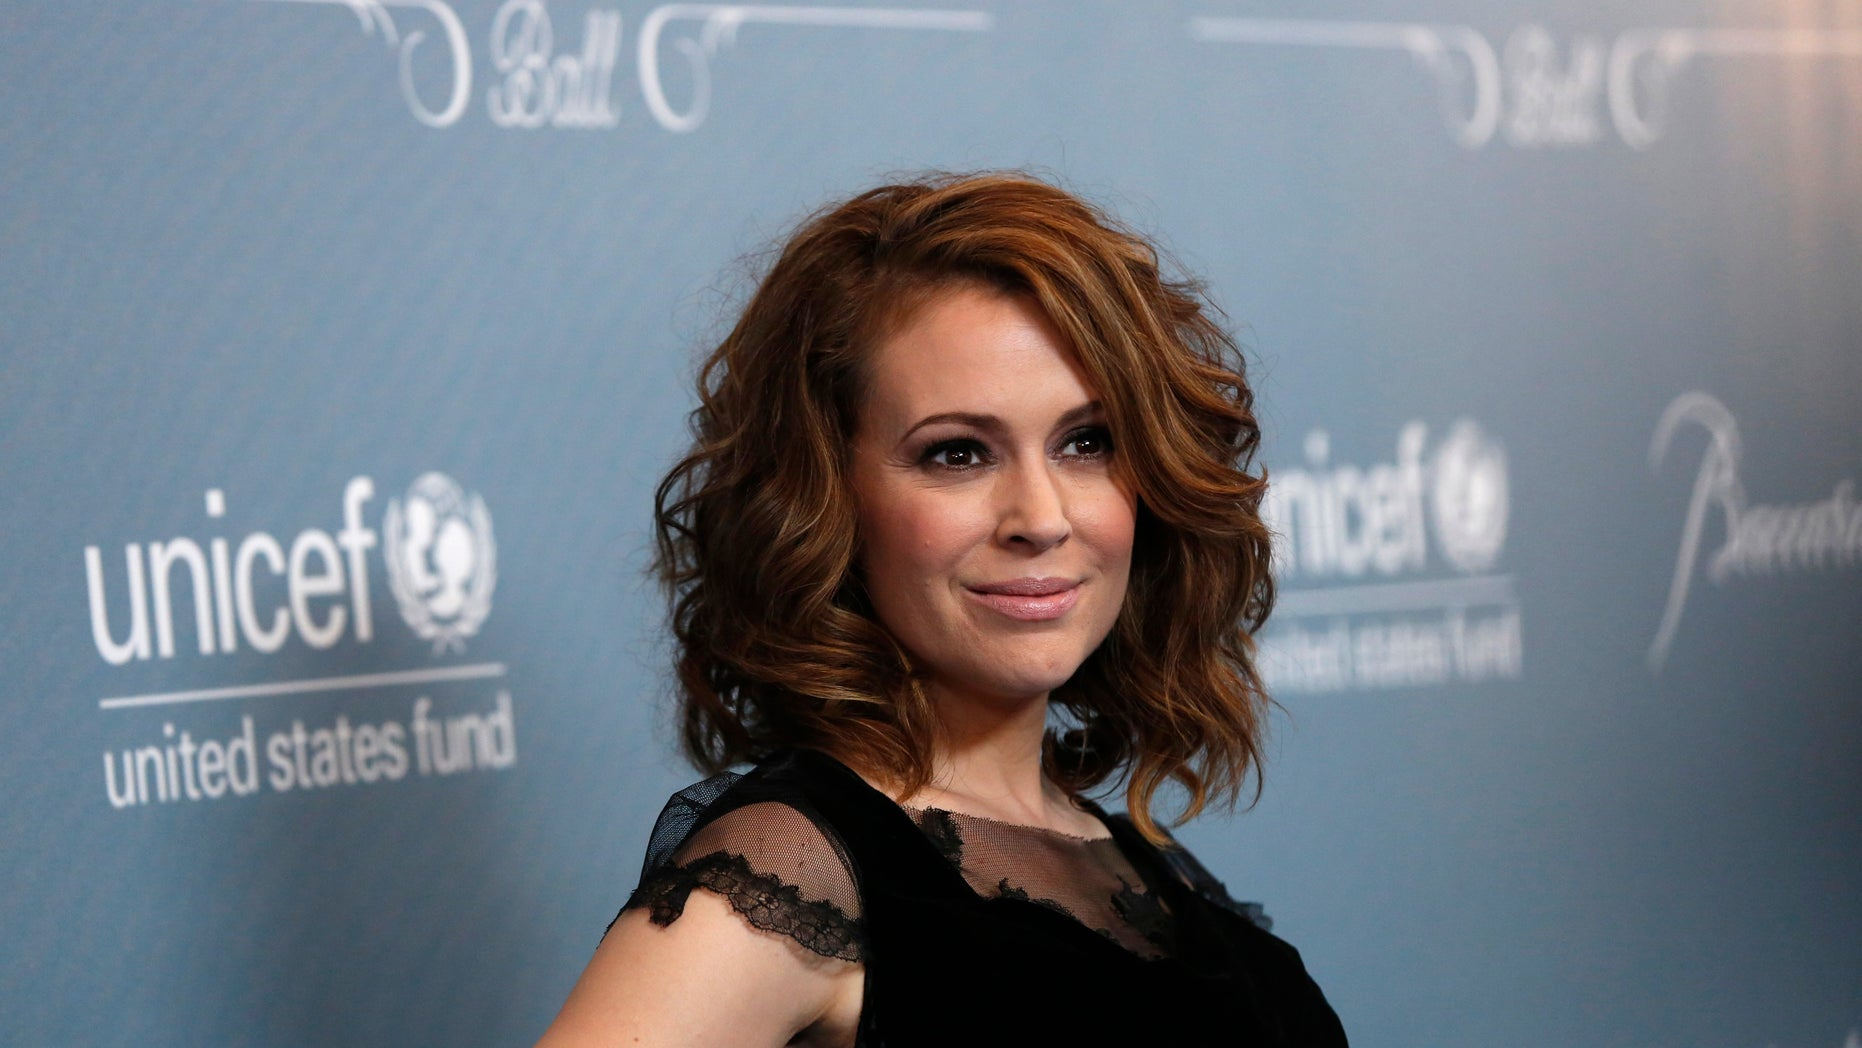 January, 2014. Alyssa Milano poses at a UNICEF fundraising gala in Beverly Hills.